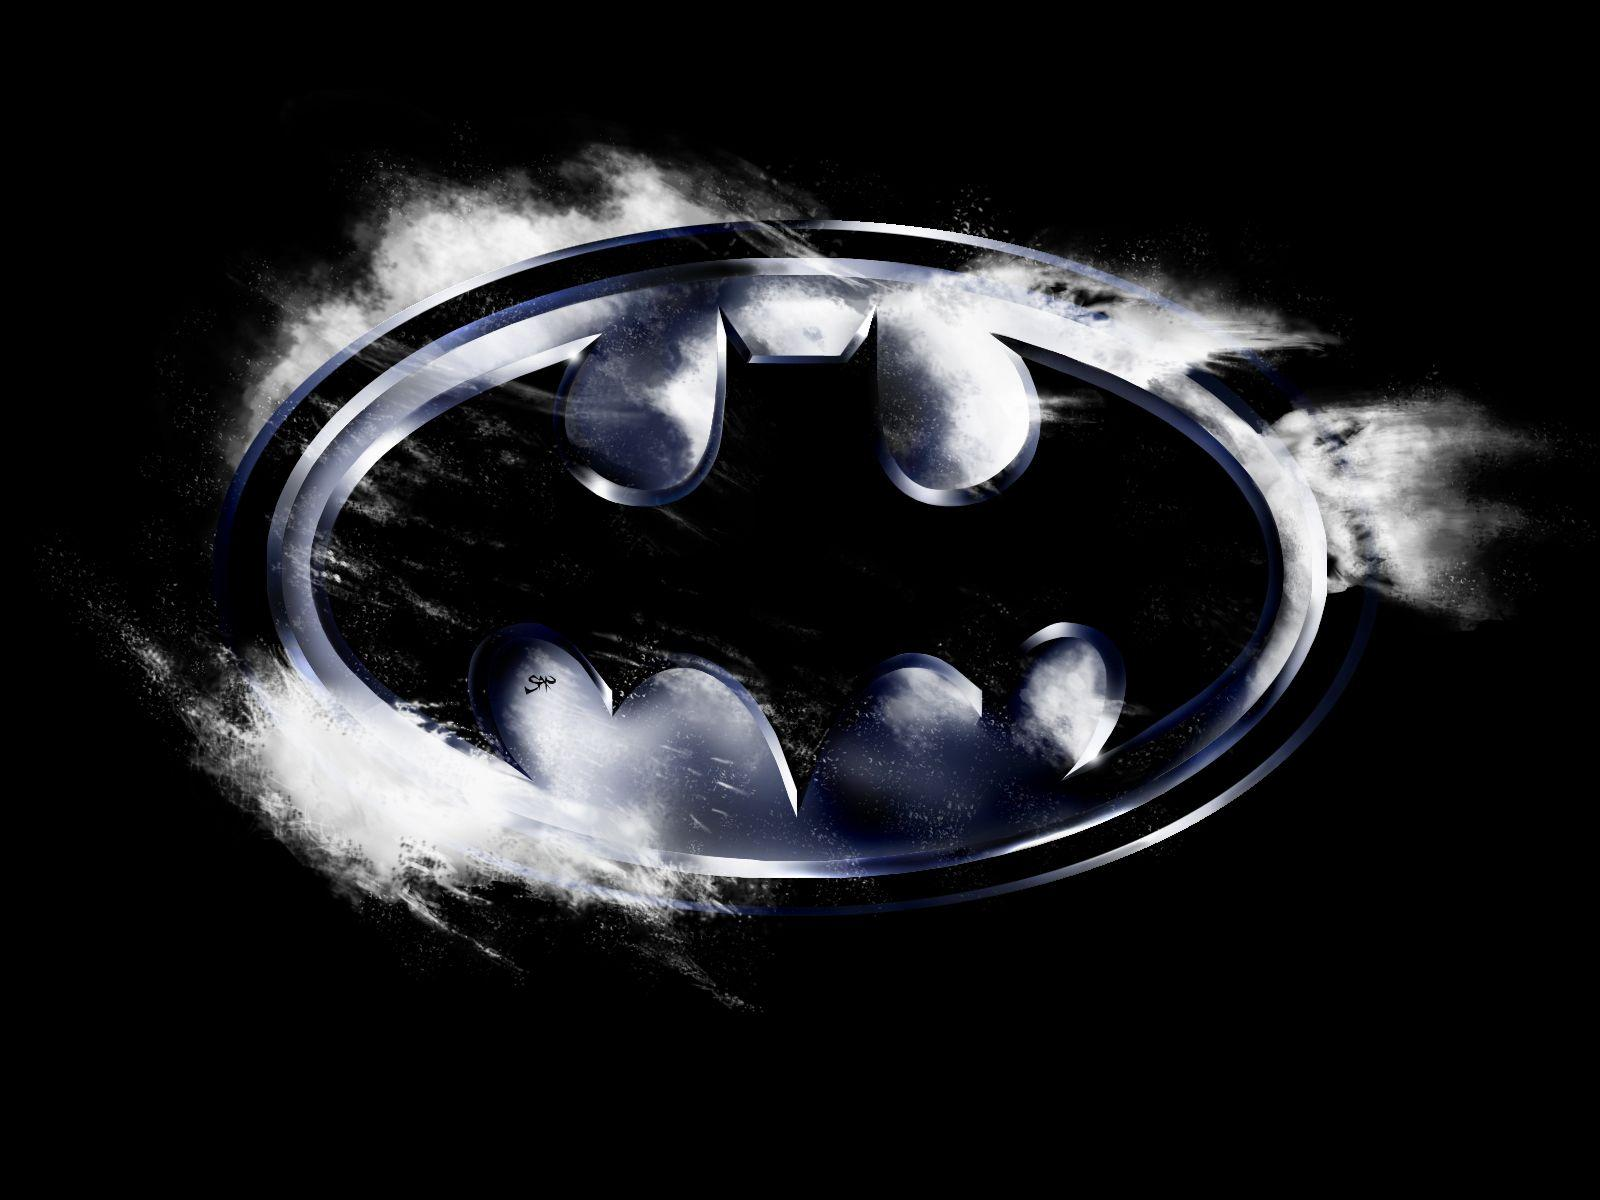 Wallpapers e imagenes de Batman | To be, Logos and Search